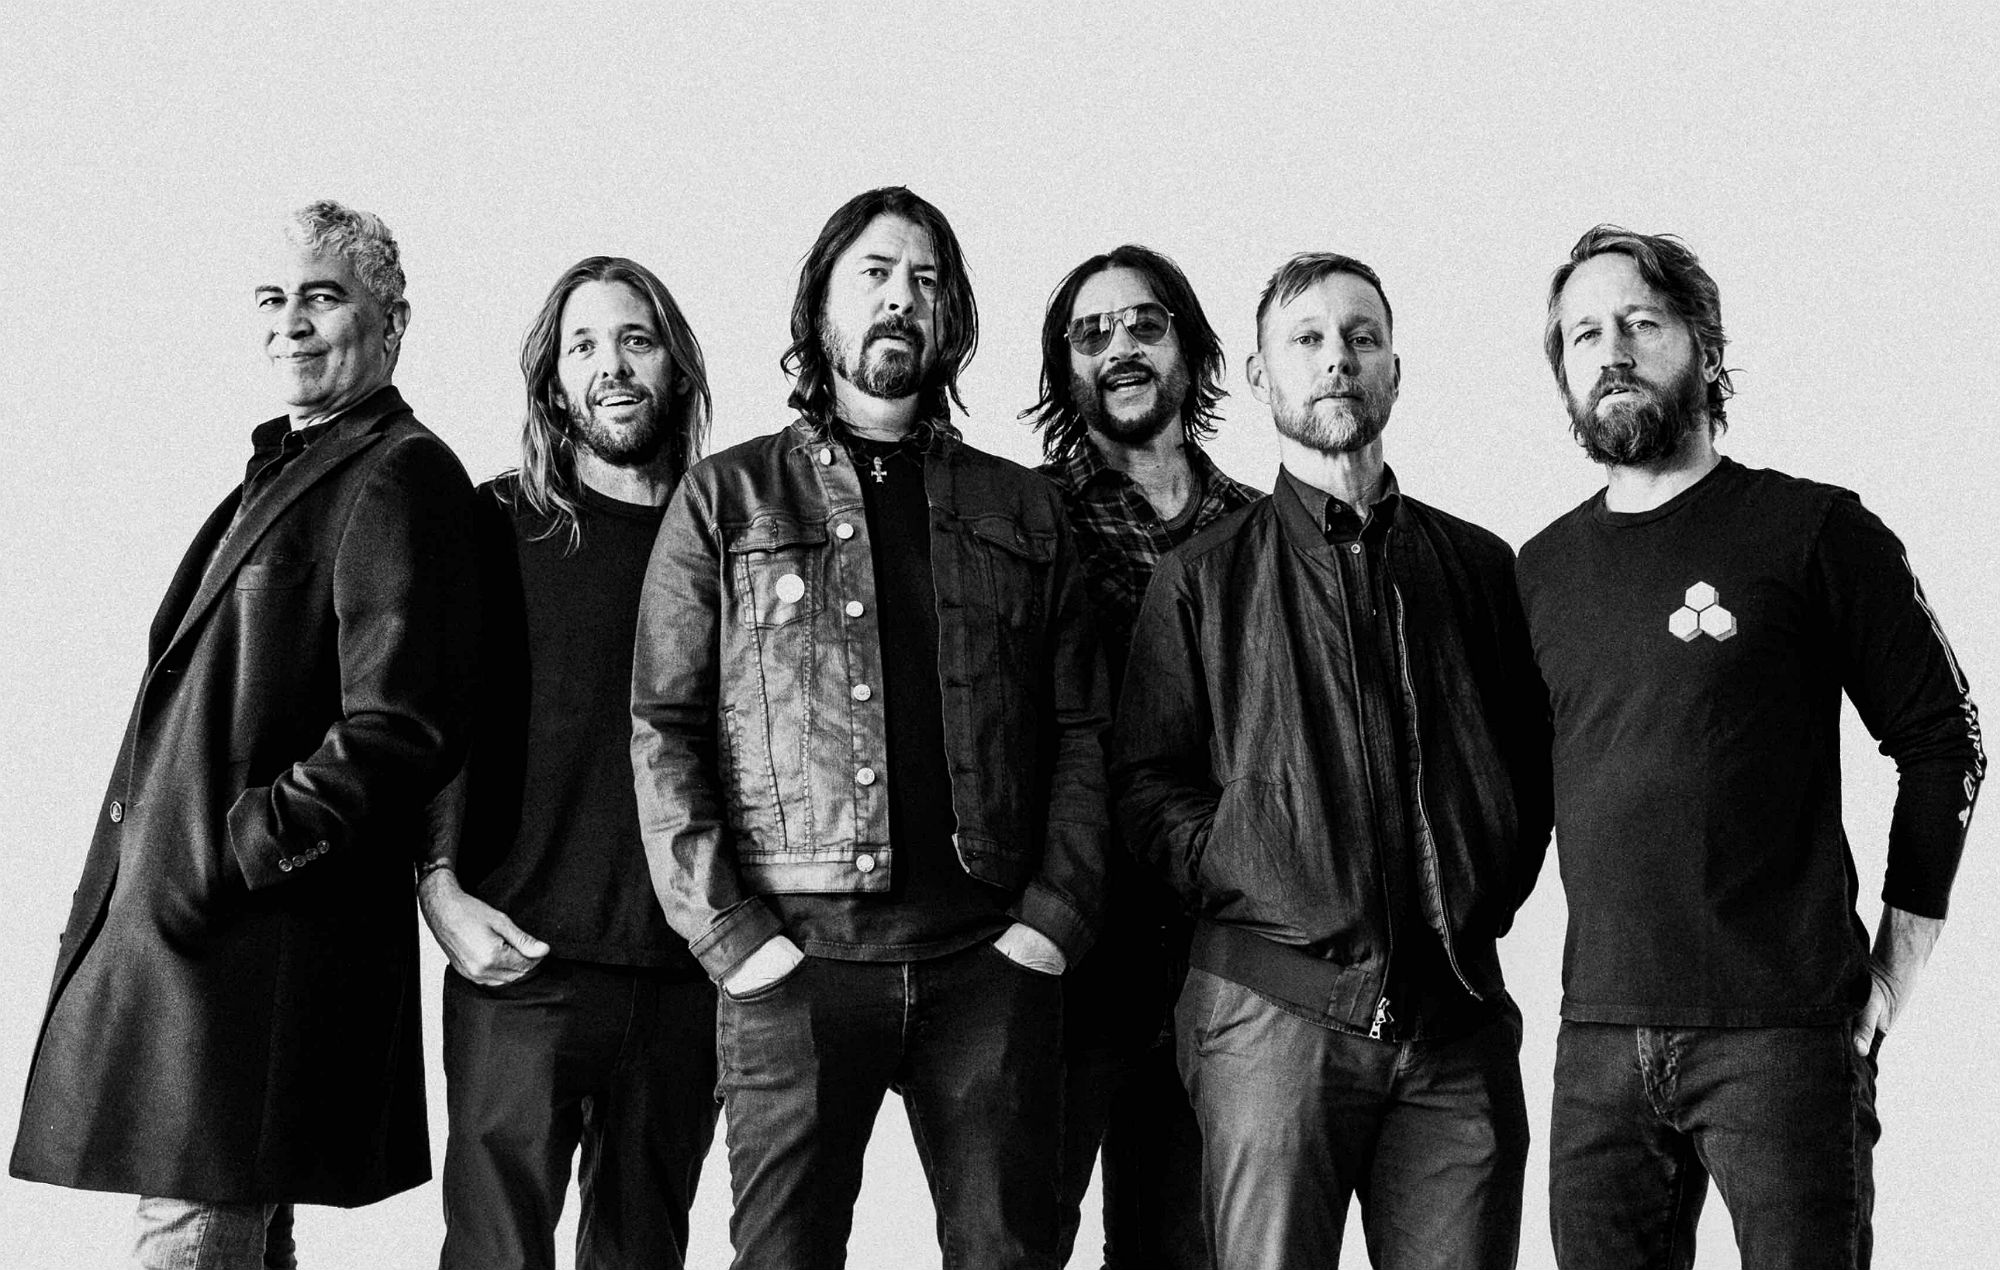 Foo Fighters to celebrate 25th anniversary by revisiting stops from 1995 US tour